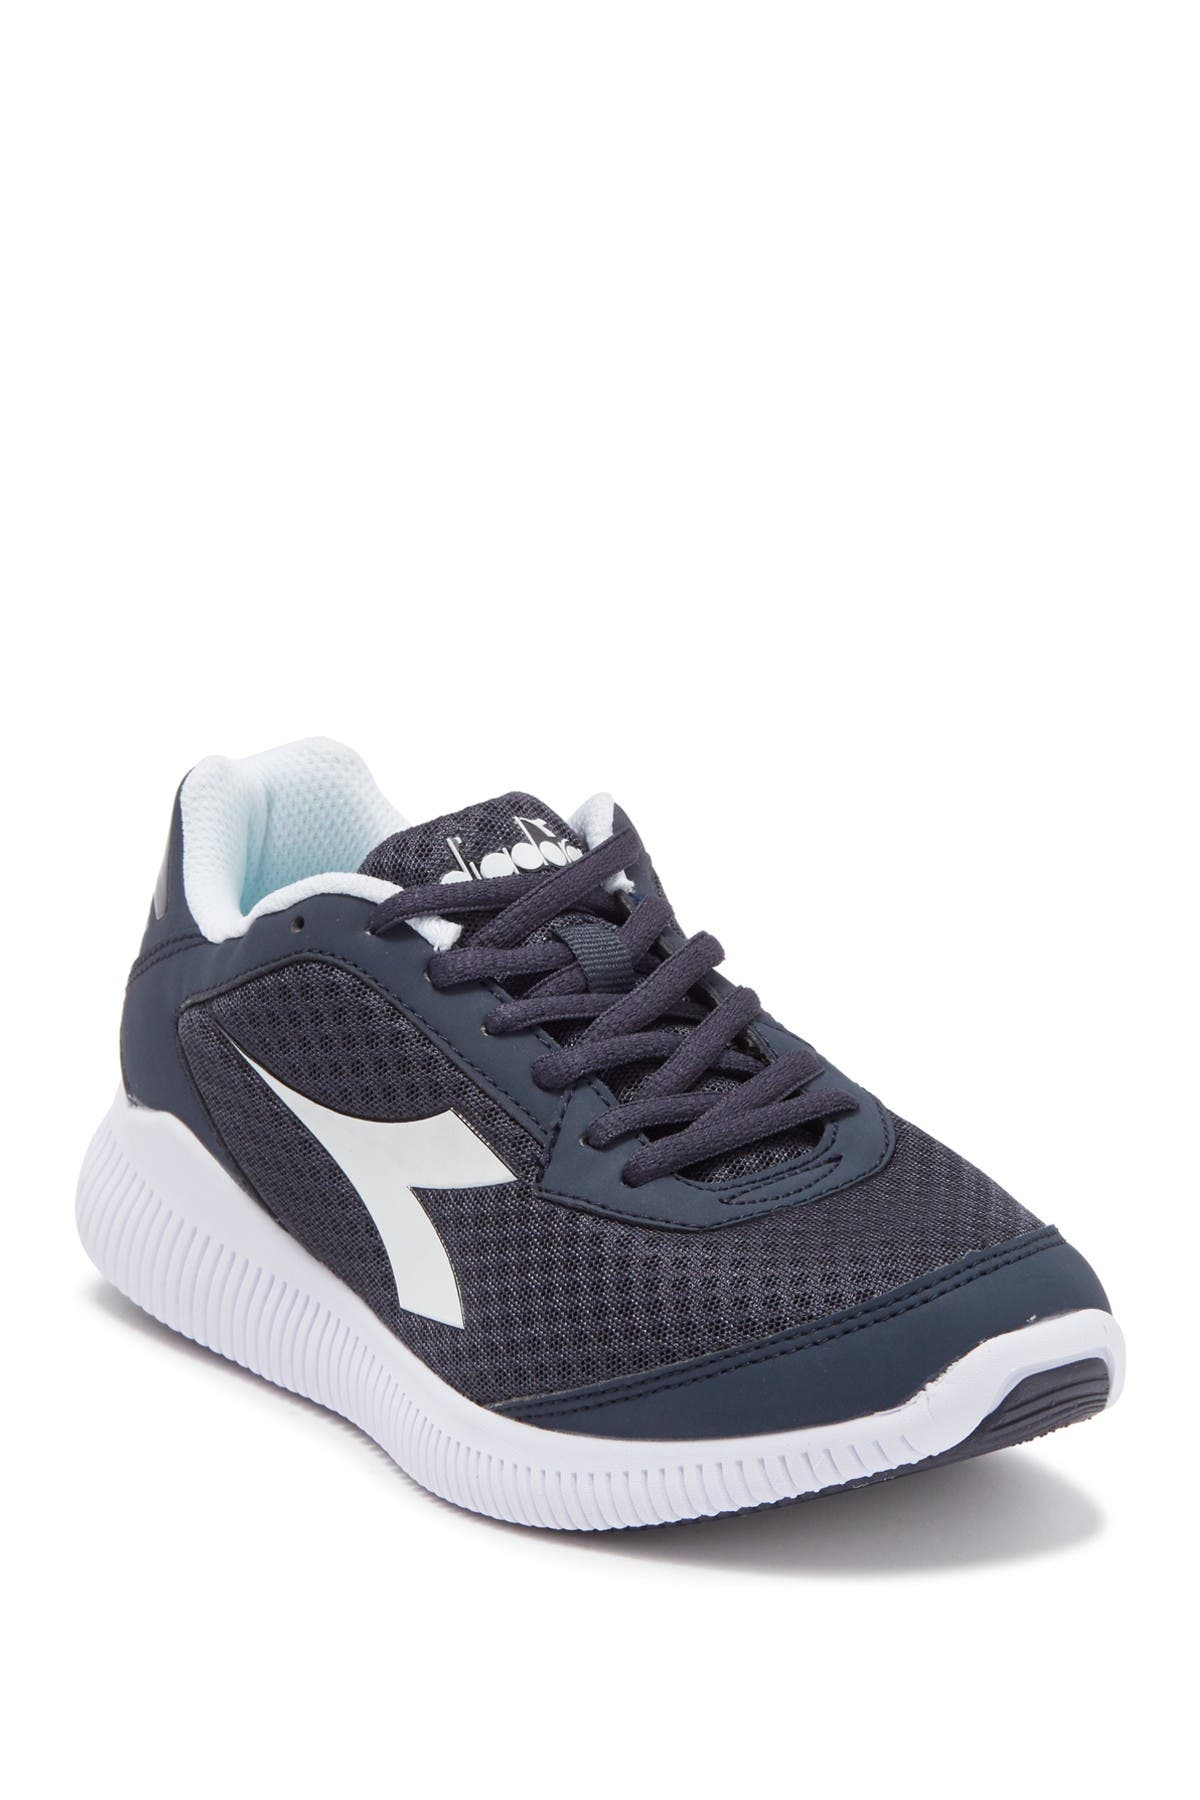 Image of Diadora Eagle Running Shoe